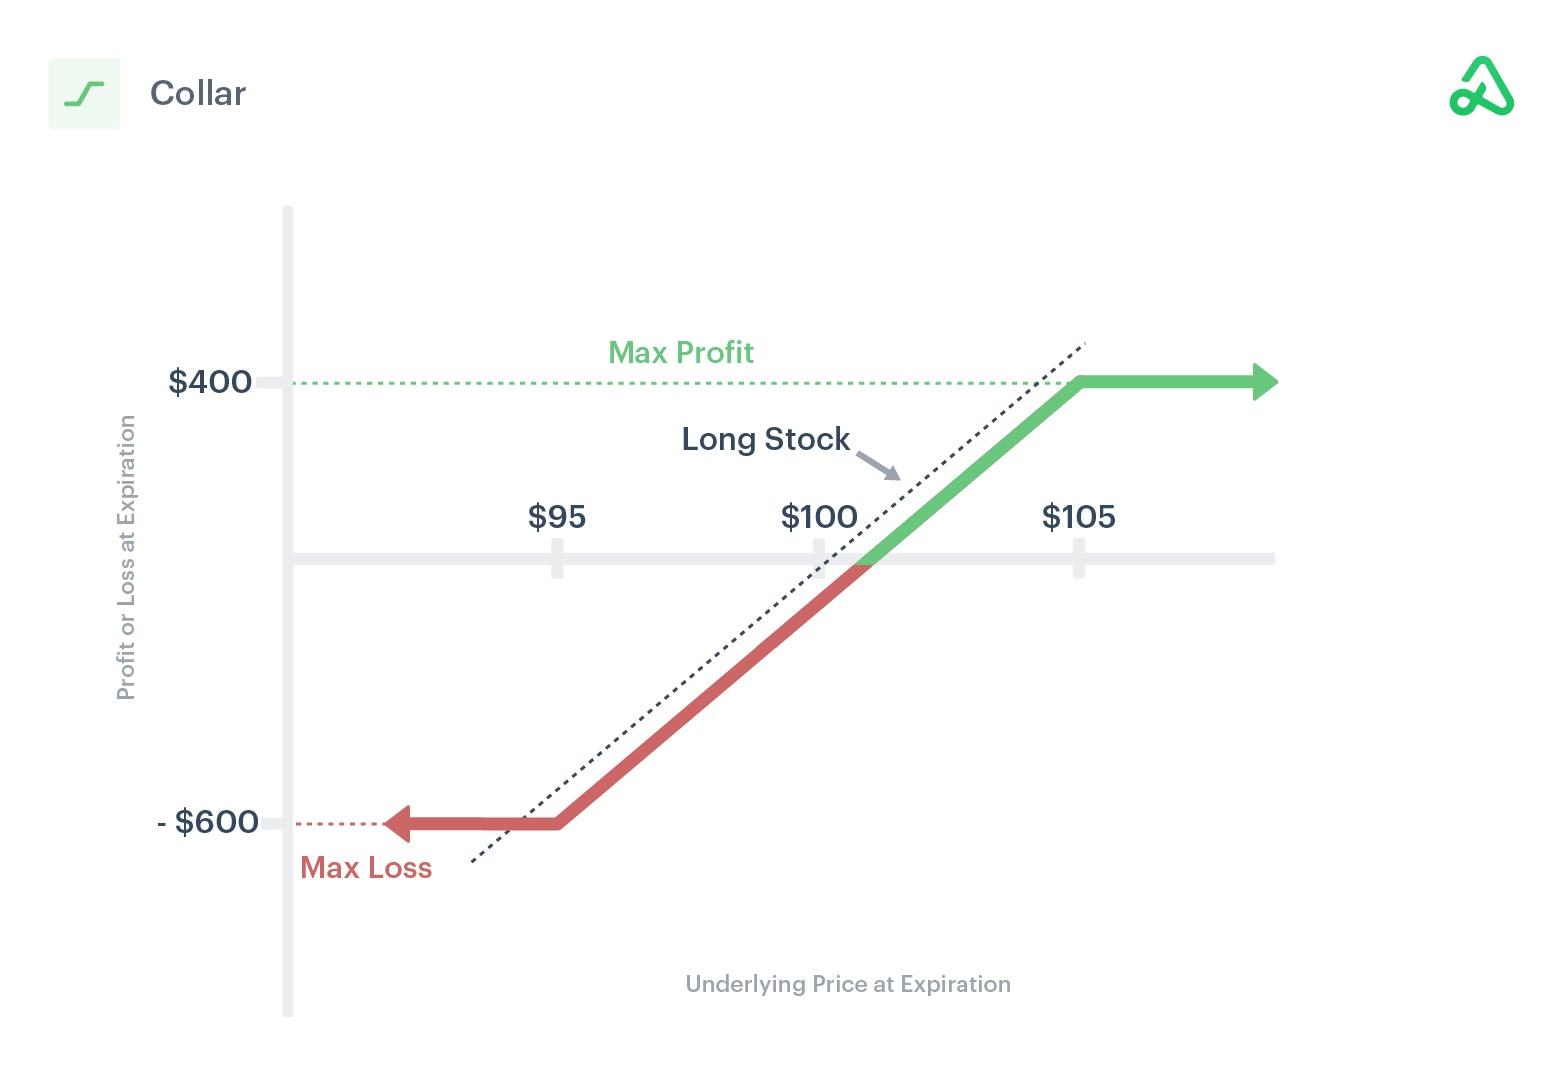 Image of a collar payoff diagram showing max profit, max loss, and break-even points